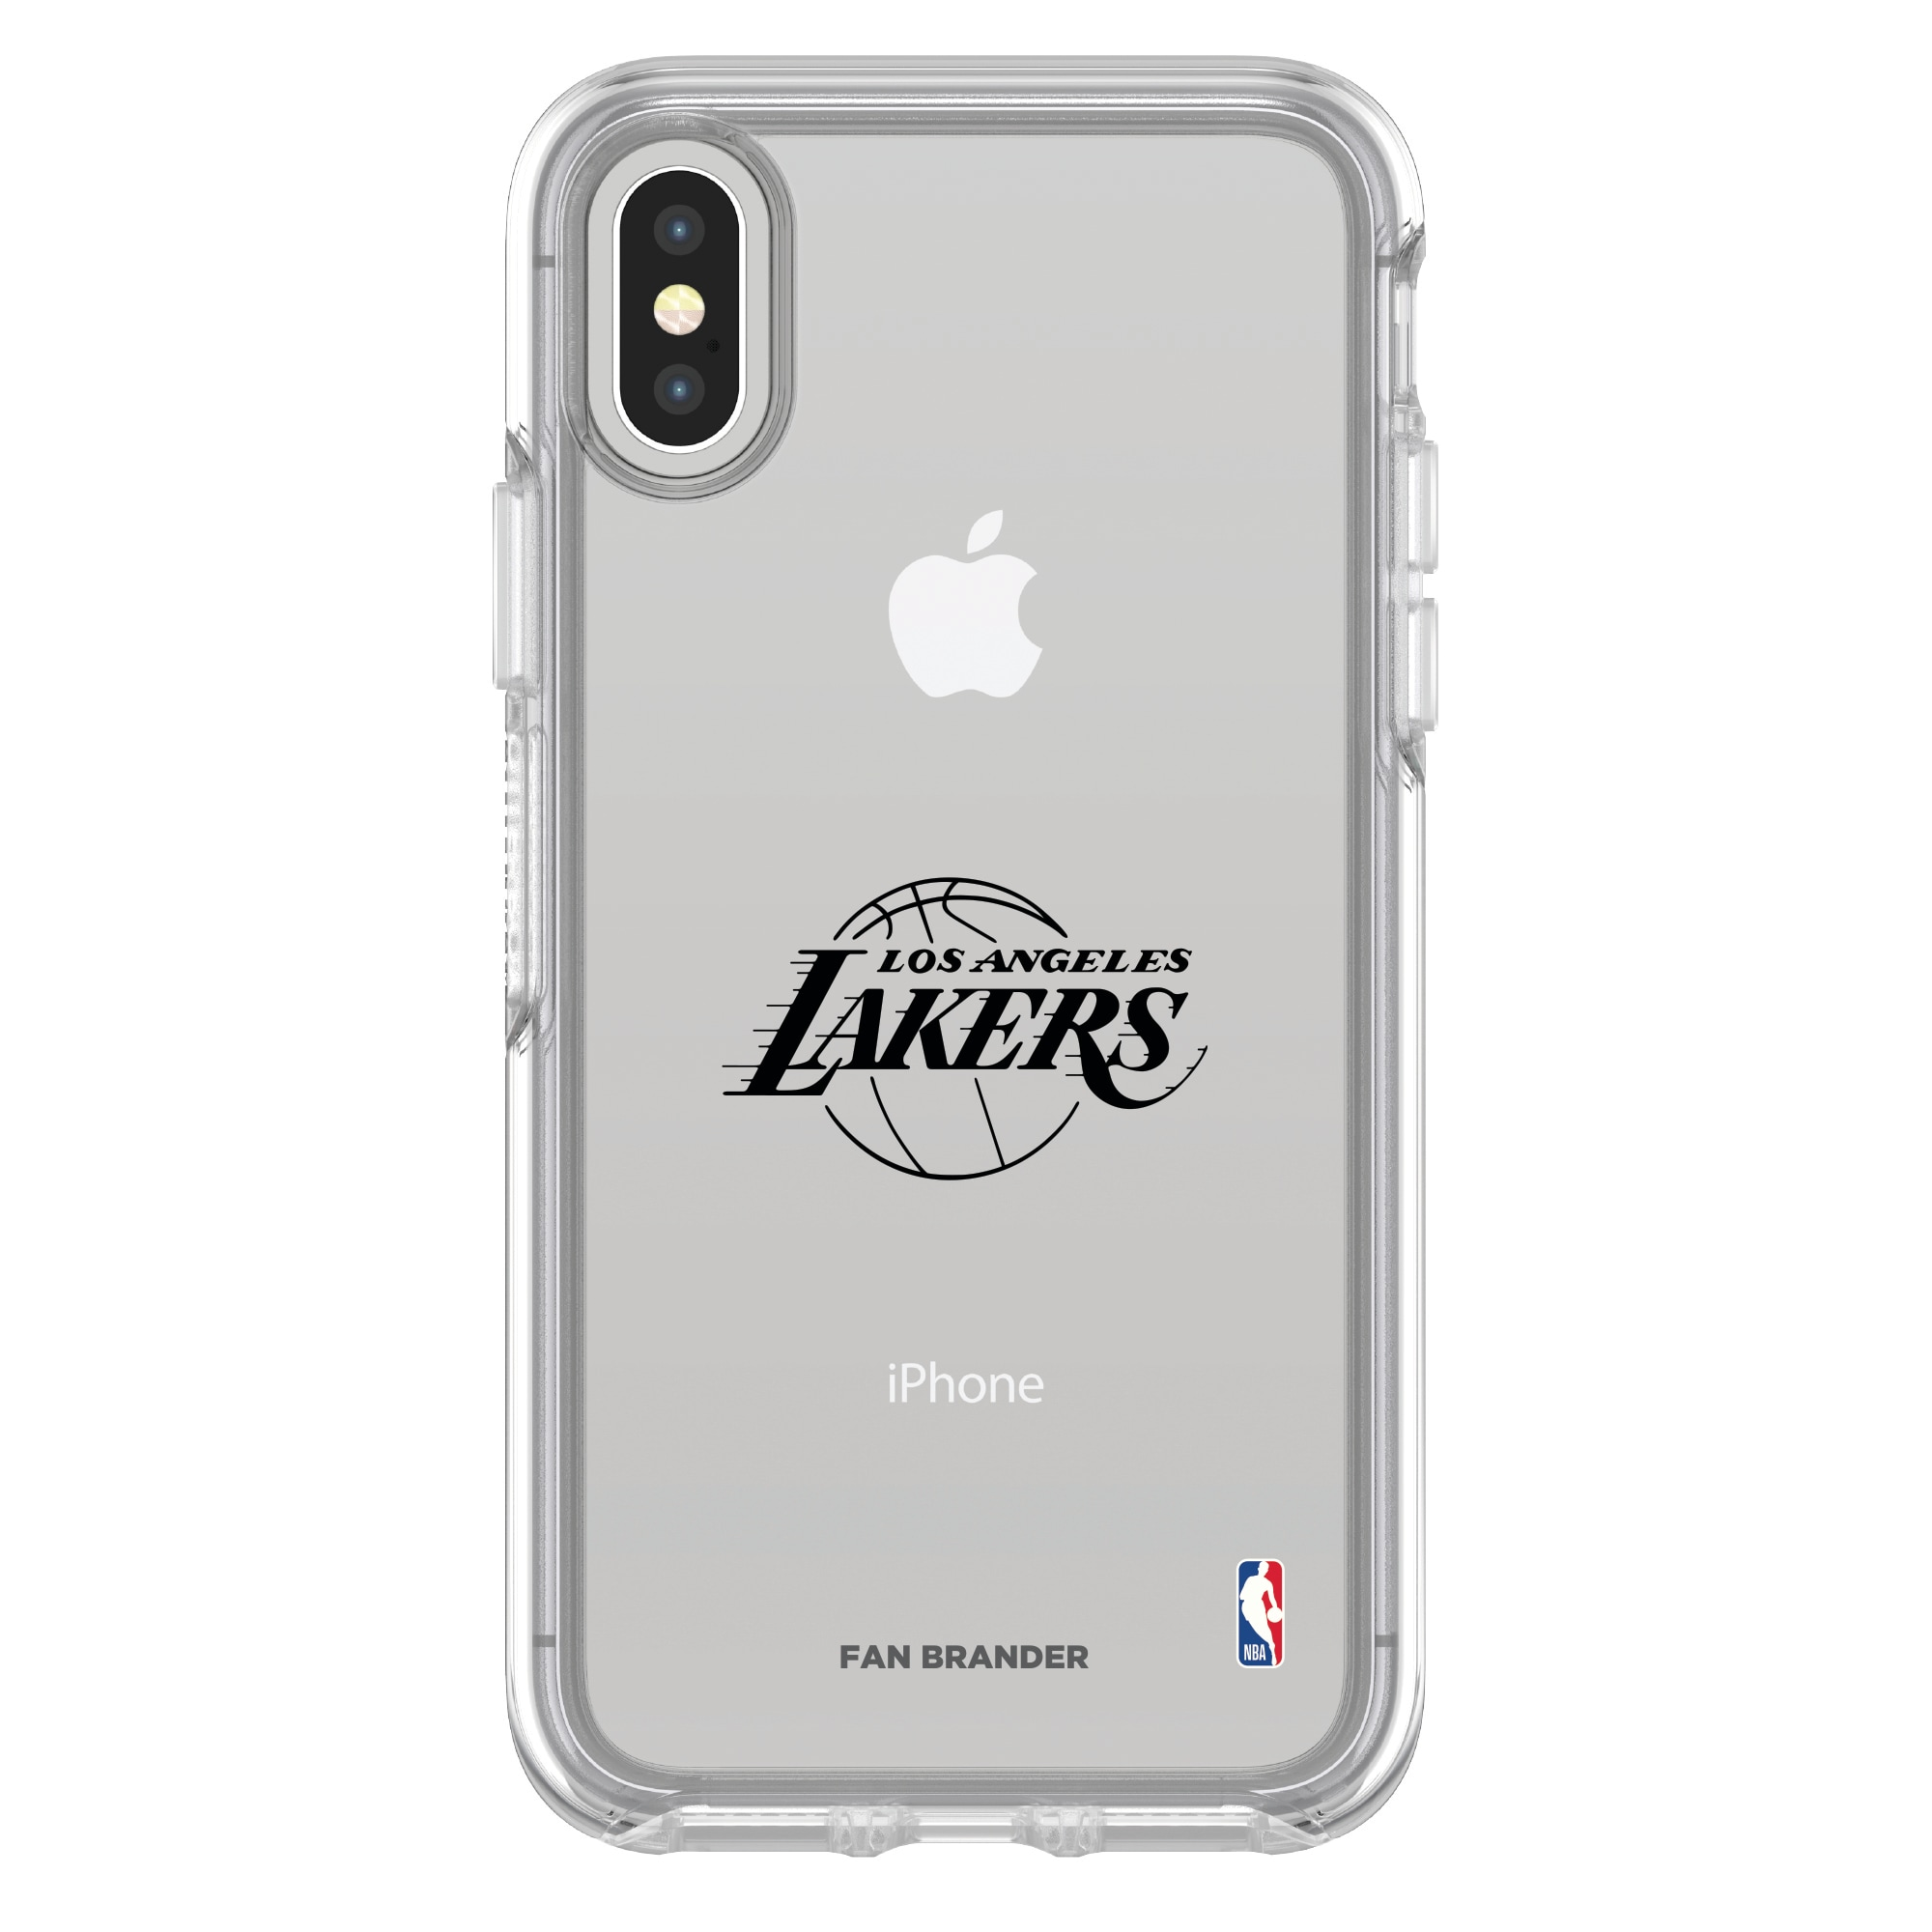 Los Angeles Lakers OtterBox Clear iPhone Symmetry Case